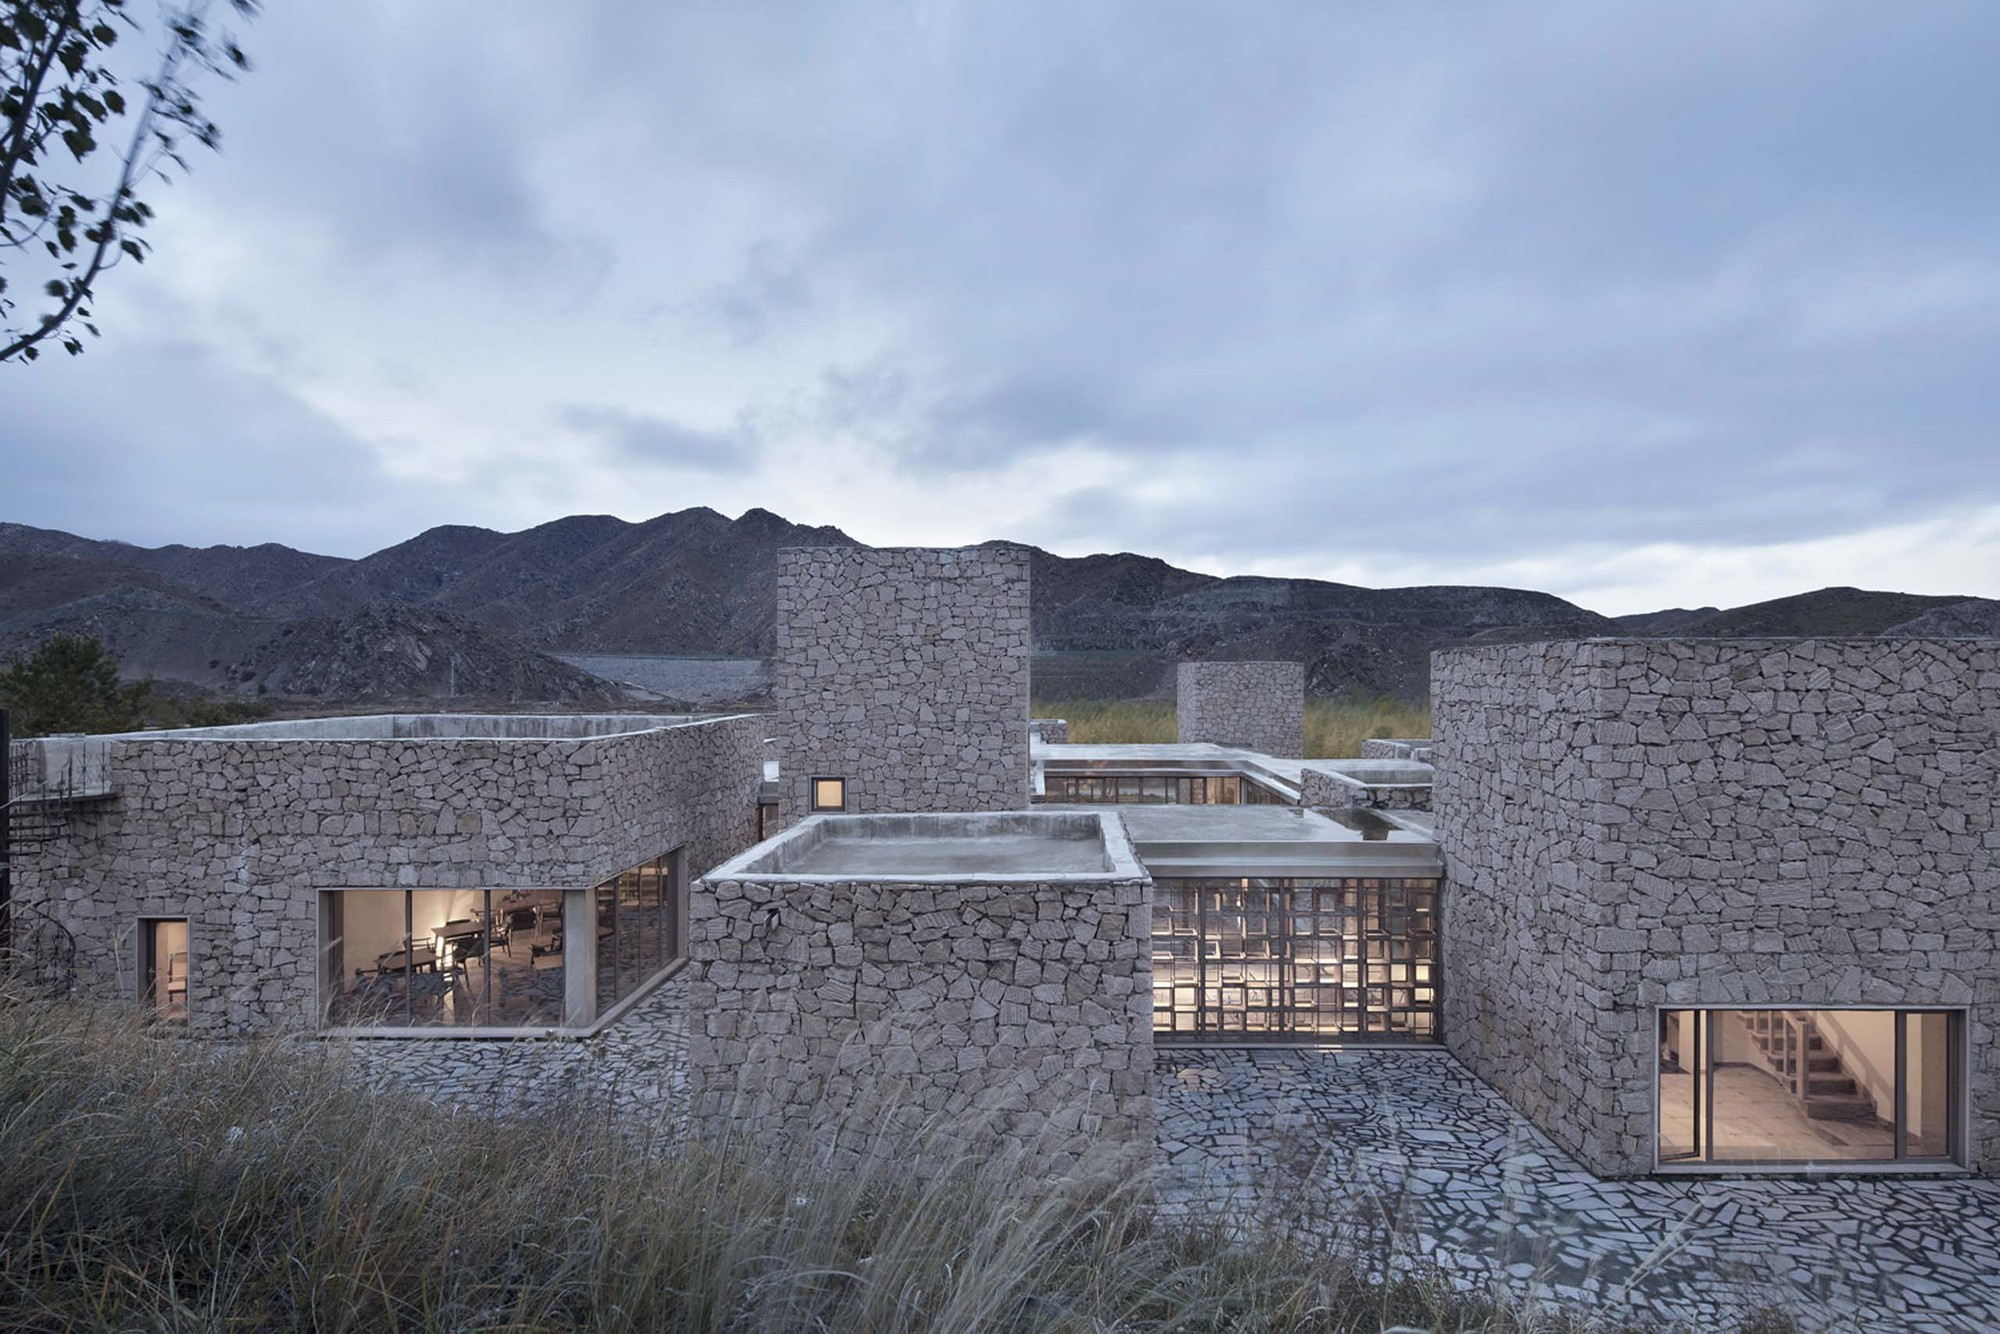 Gallery of Redstone House / Atelier 11111111s+1111 - 1111